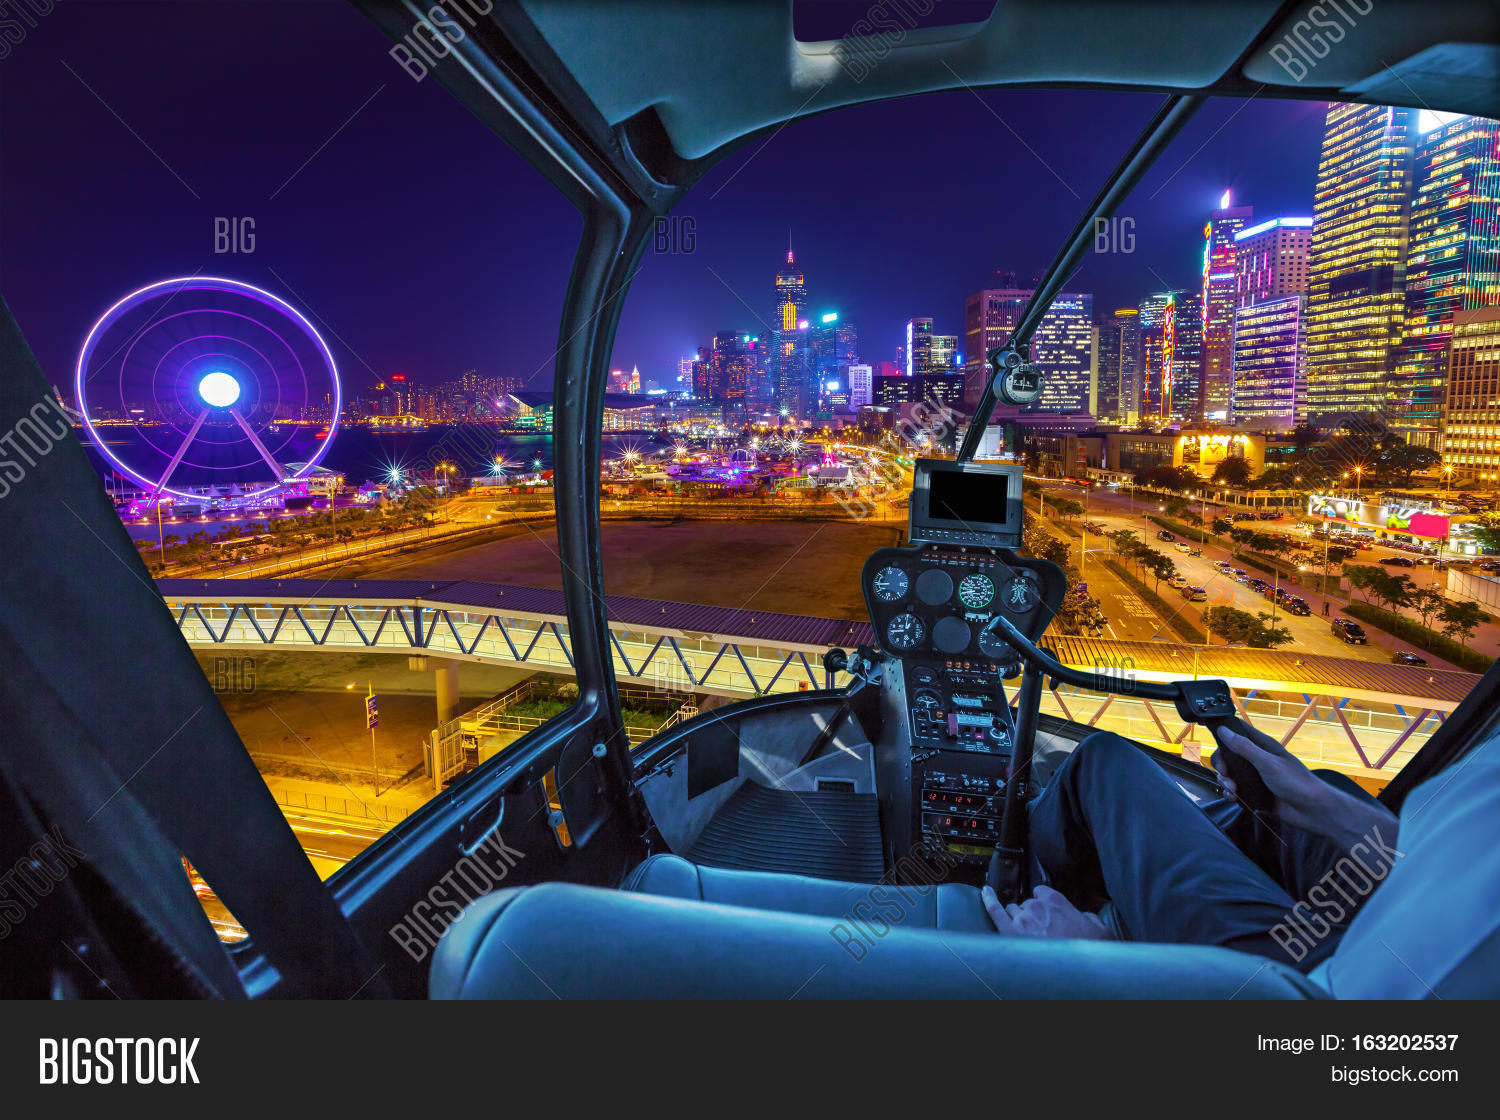 helicopter license price with Stock Photo Helicopter Cockpit Aerial View Of Cityscape In Hong Kong  Central District  With Observation Ferris Wheel At Victoria Harbour Illuminated At Night on File Murray Model T Homebuilt Helicopter  4282648989 in addition H1705CA58 additionally 467495415 furthermore Stock Photo Helicopter Cockpit Aerial View Of Cityscape In Hong Kong  Central District  With Observation Ferris Wheel At Victoria Harbour Illuminated At Night additionally Ka 50 Black Shark  Hokum A.